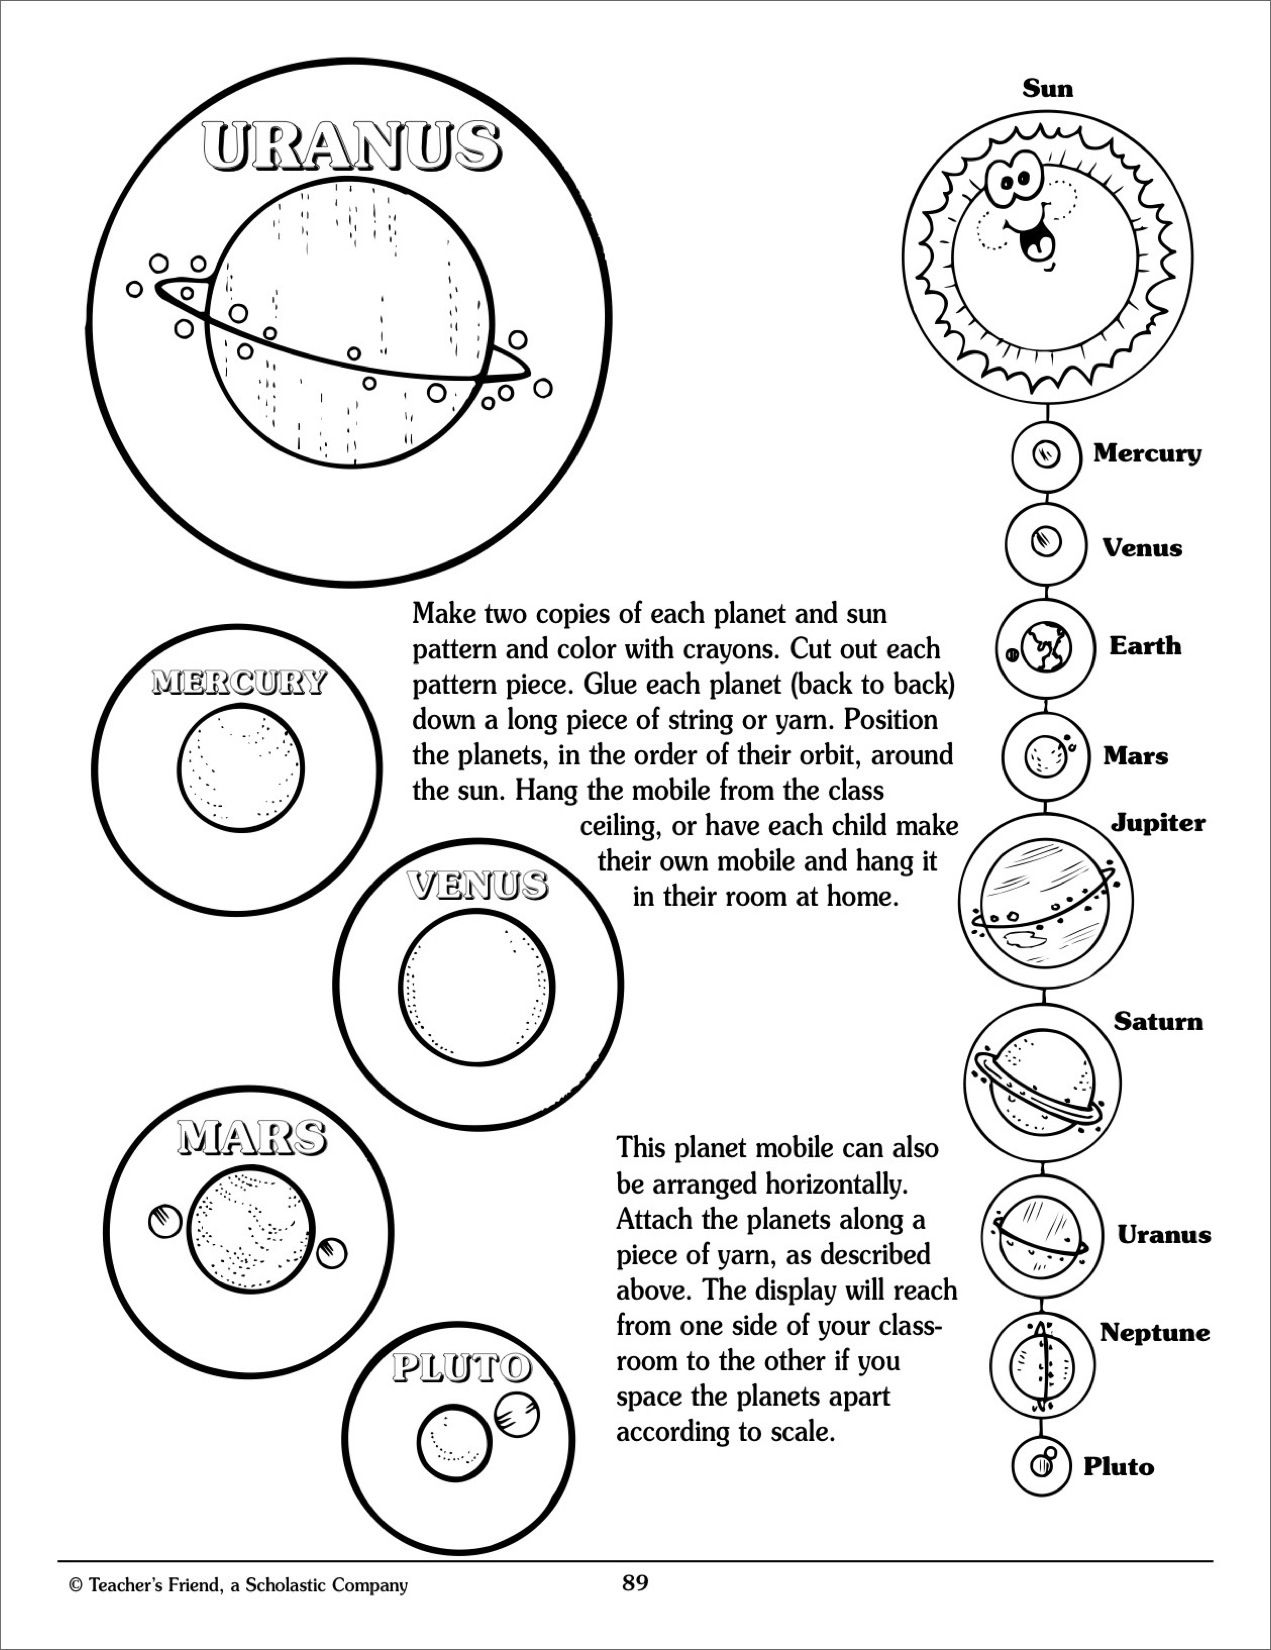 Solar System Mobile - Scholastic Printables | Crazy Things I Get | Free Printable Solar System Worksheets